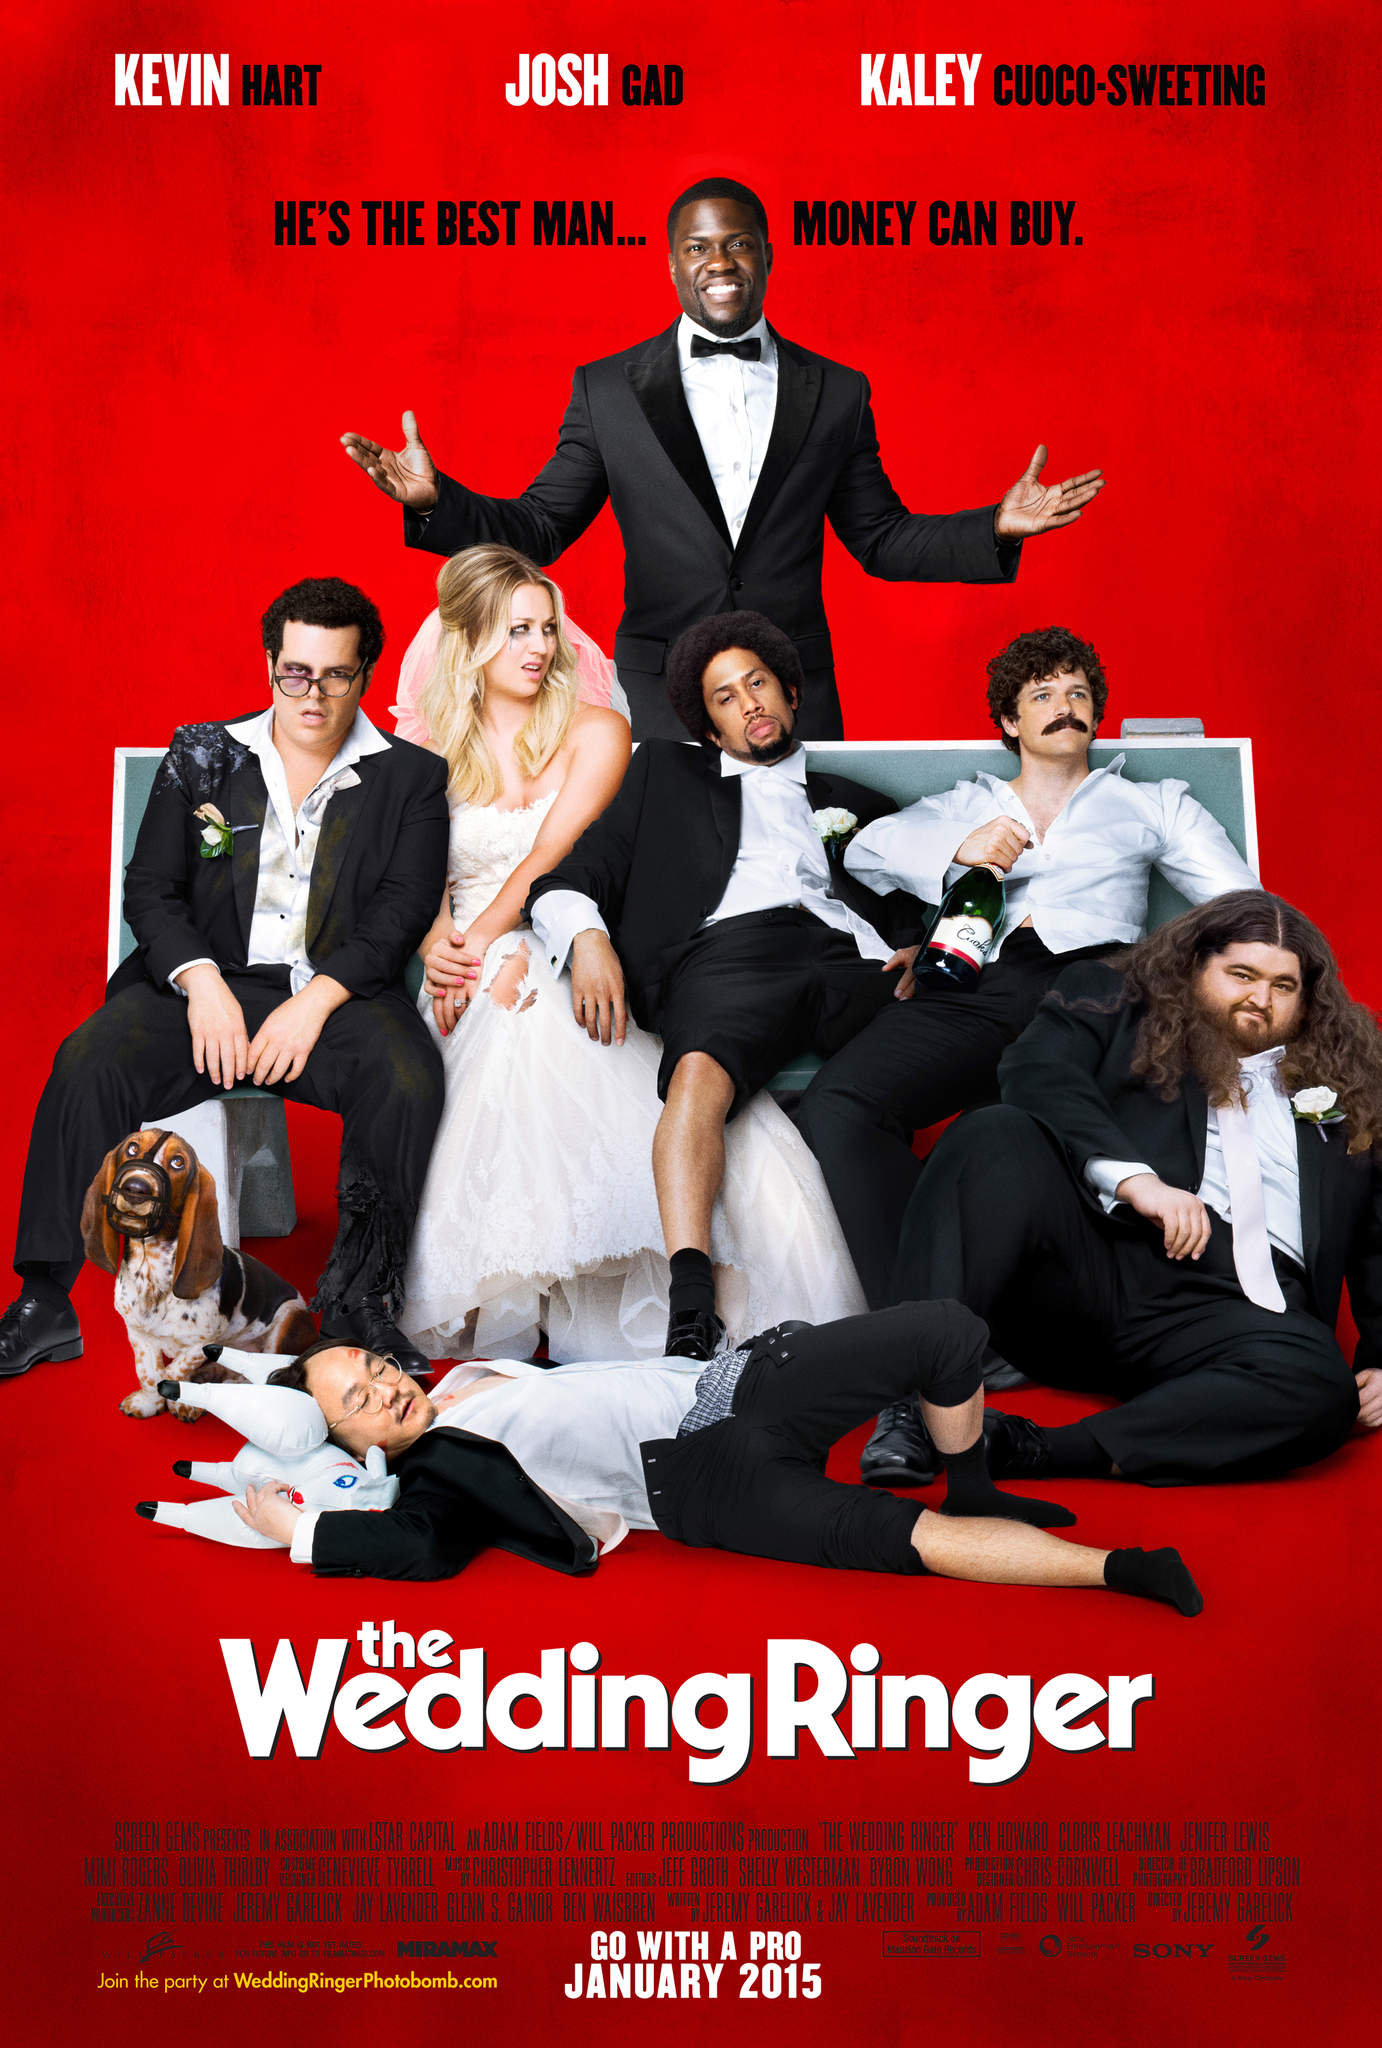 f21696f27 The Wedding Ringer (2015) - IMDb